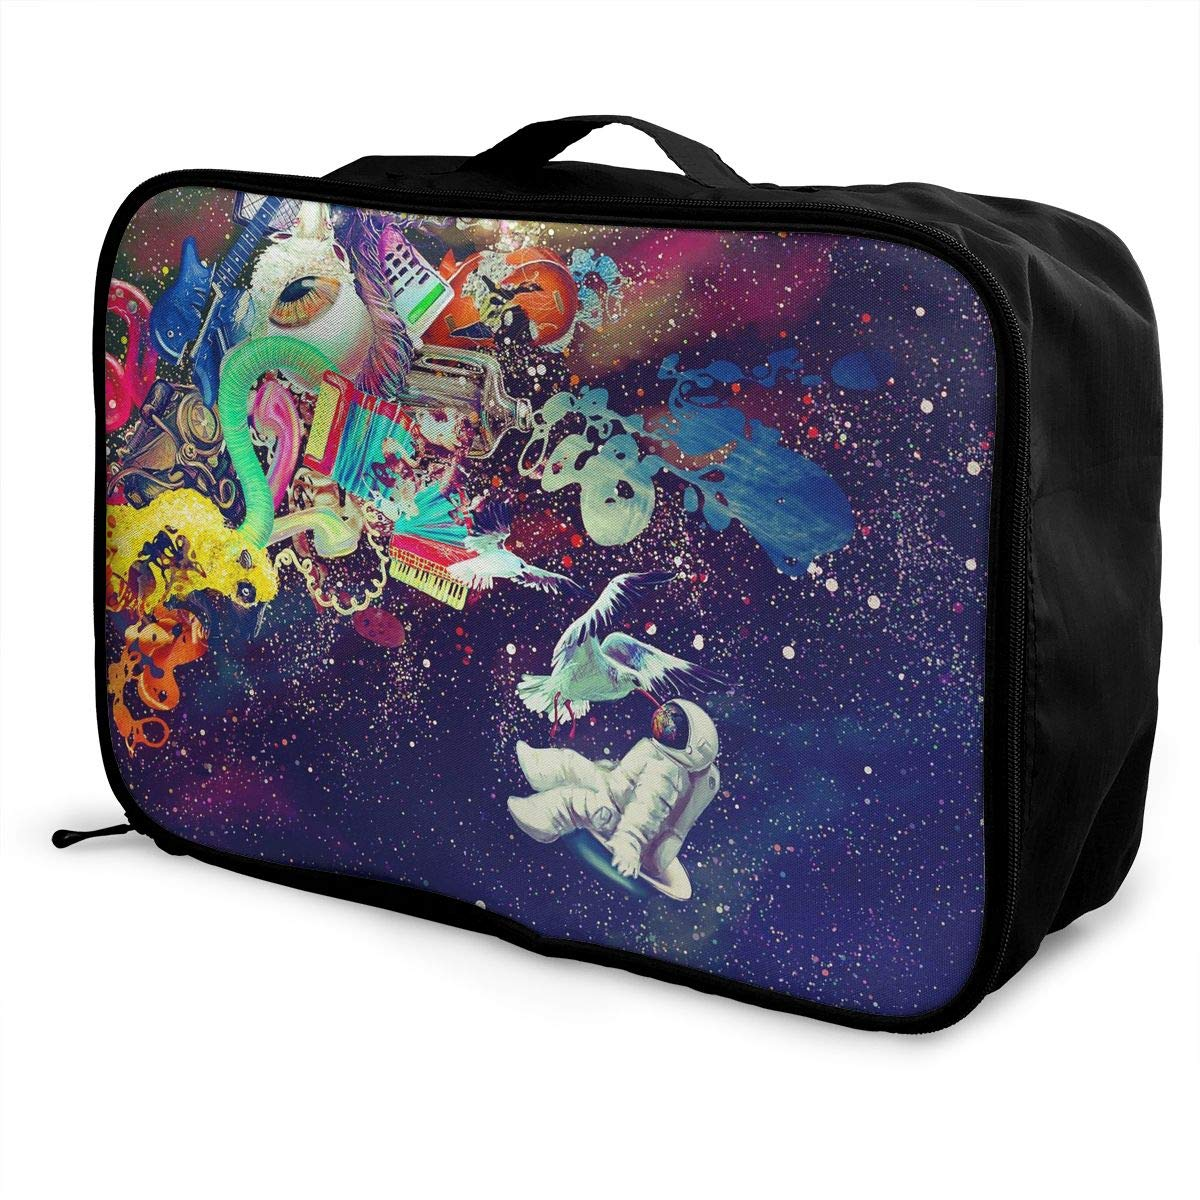 Travel Luggage Duffle Bag Lightweight Portable Handbag Psychedelic Space Large Capacity Waterproof Foldable Storage Tote